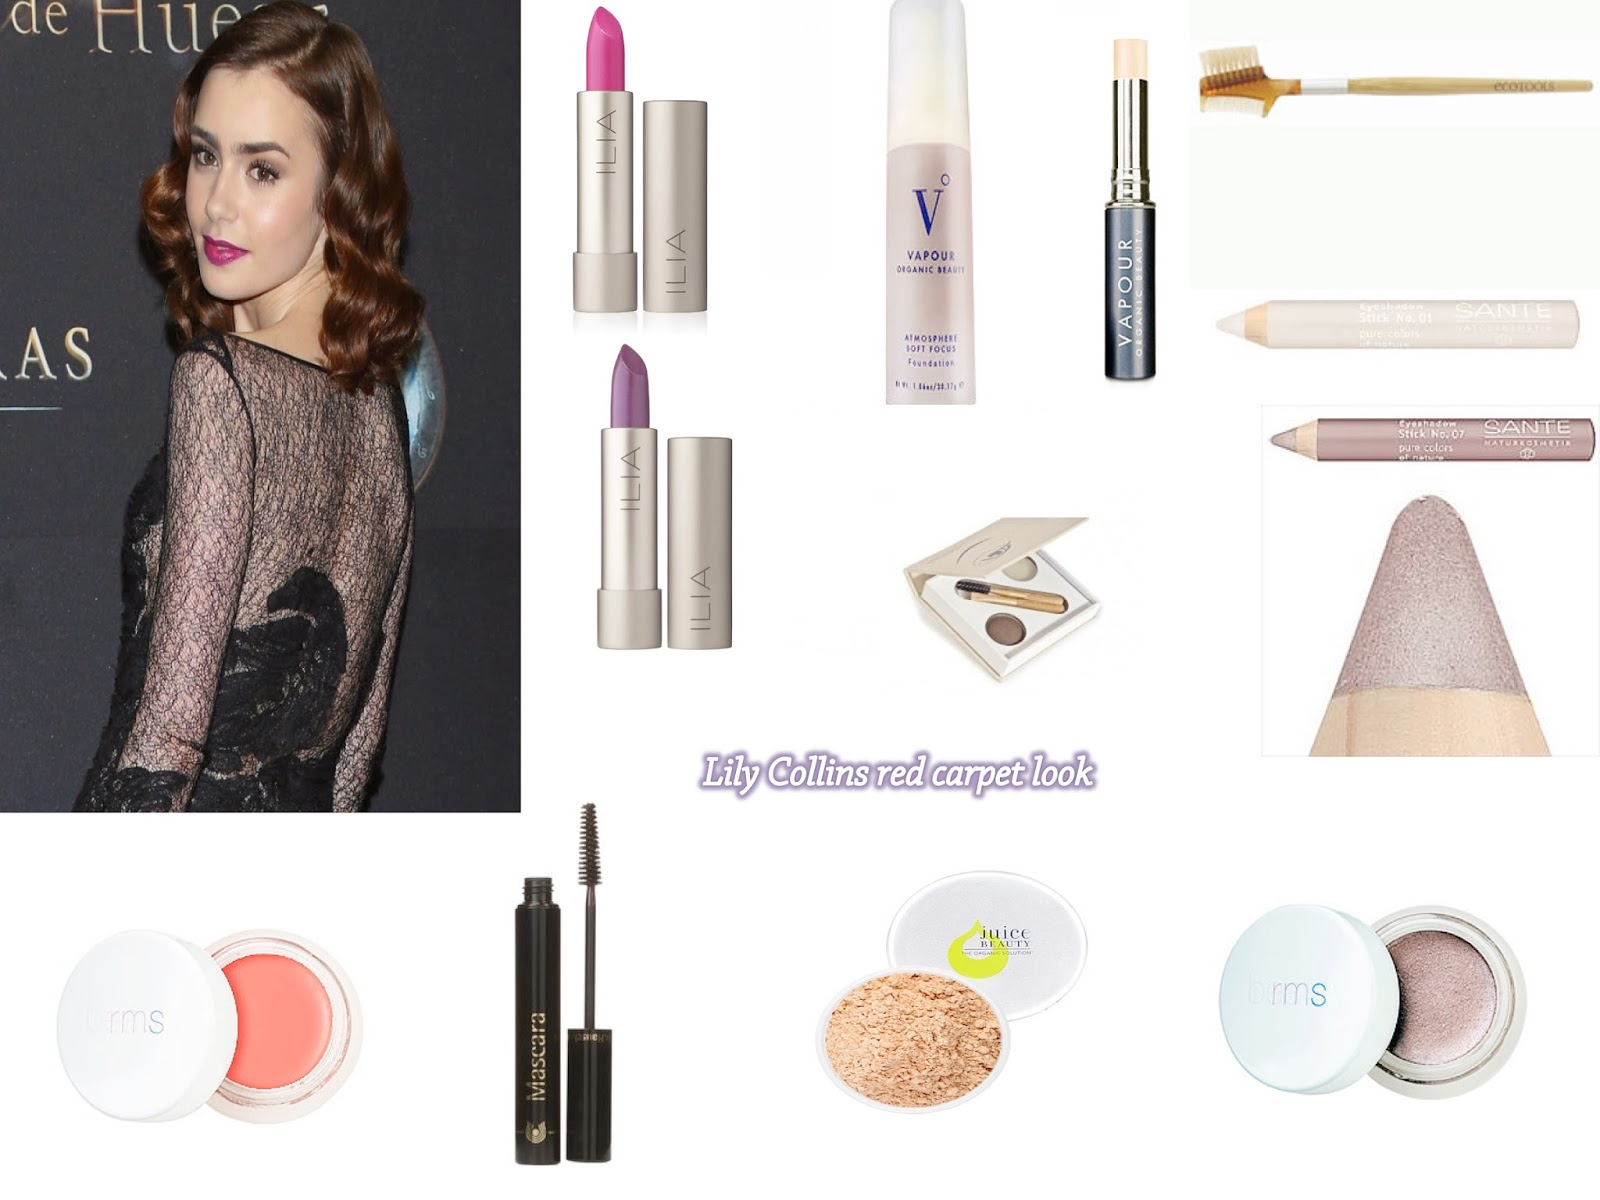 Lily Collins Makeup Look with Natural Cosmetics - Smells